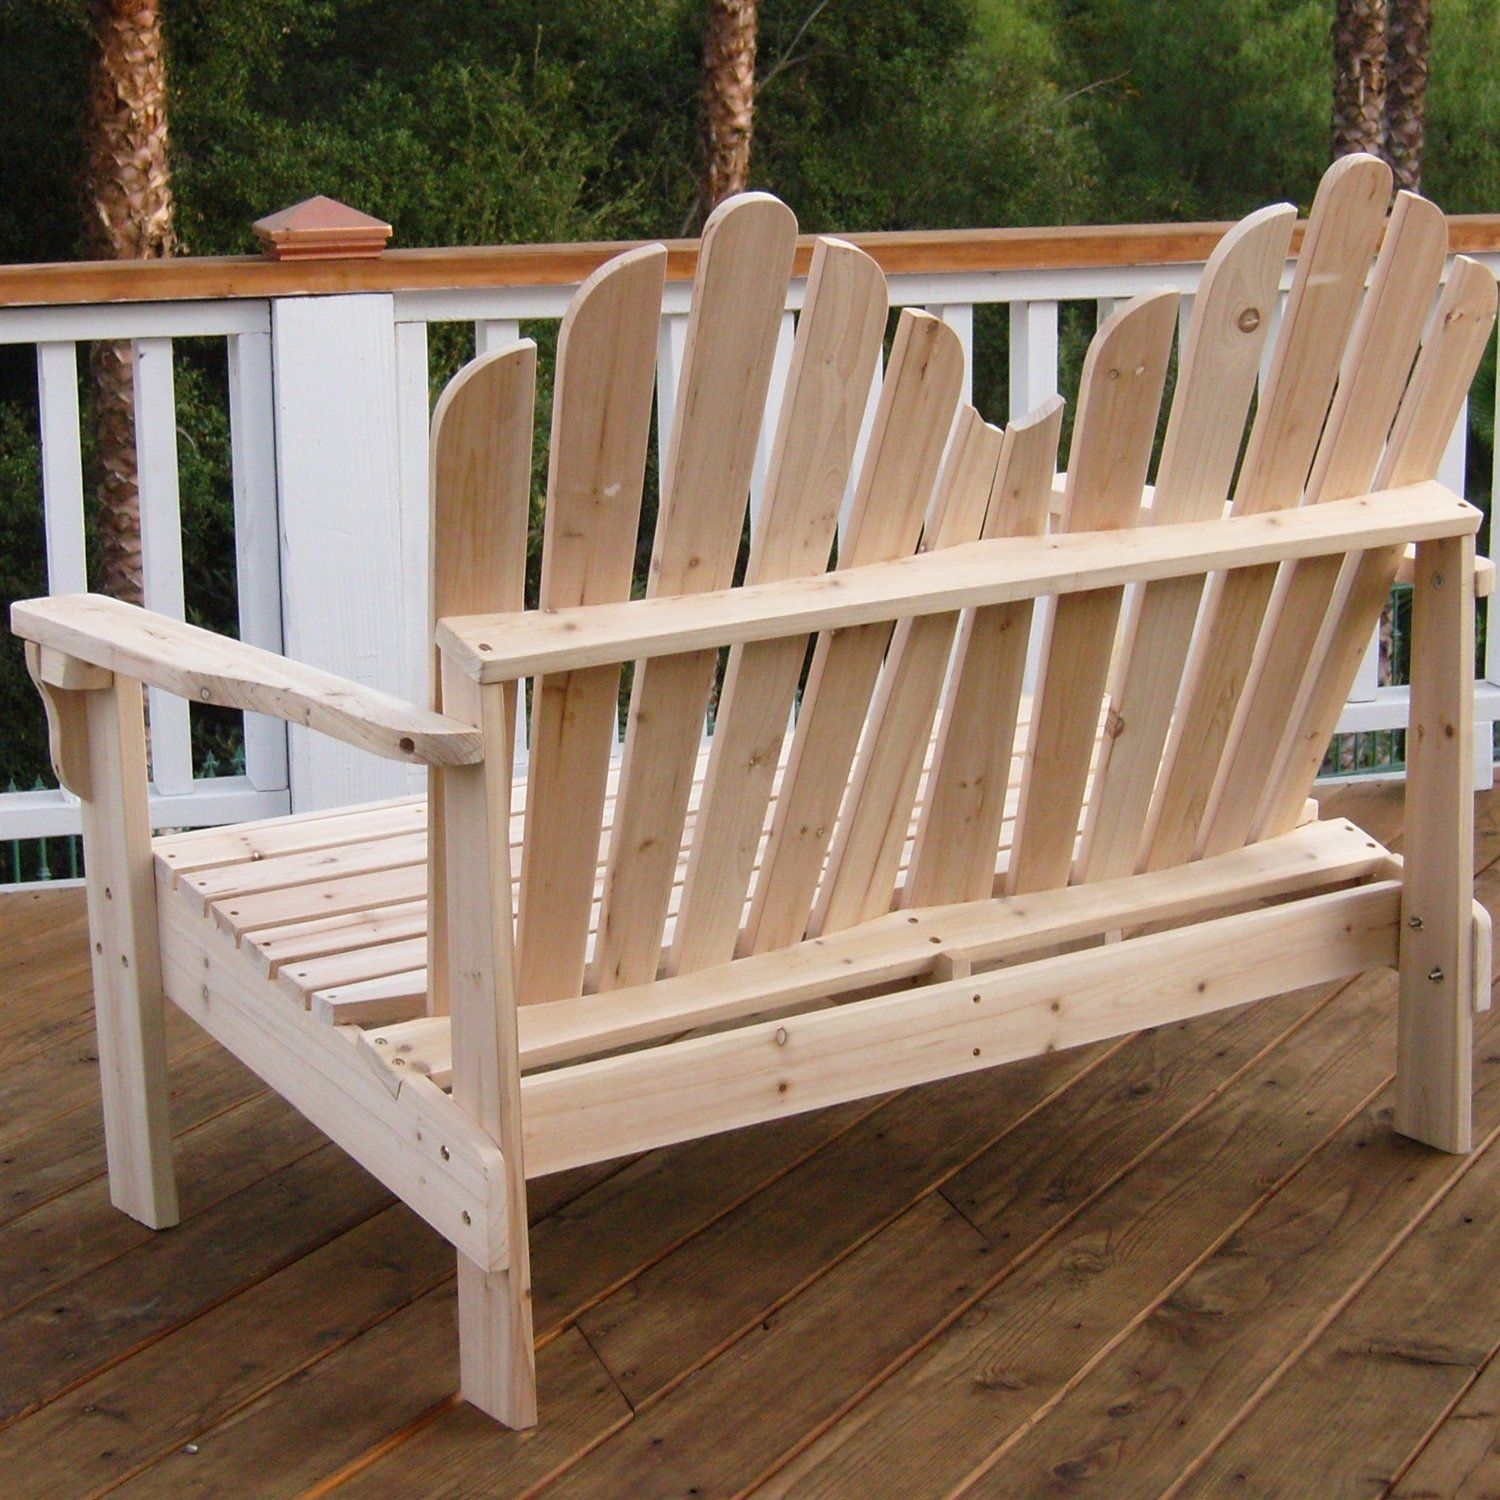 This 2 Seat Adirondack Style Outdoor Cedar Wood Garden Bench Would Be A Great Addition To Your Outdoor Furniture Plans Used Outdoor Furniture Outdoor Furniture